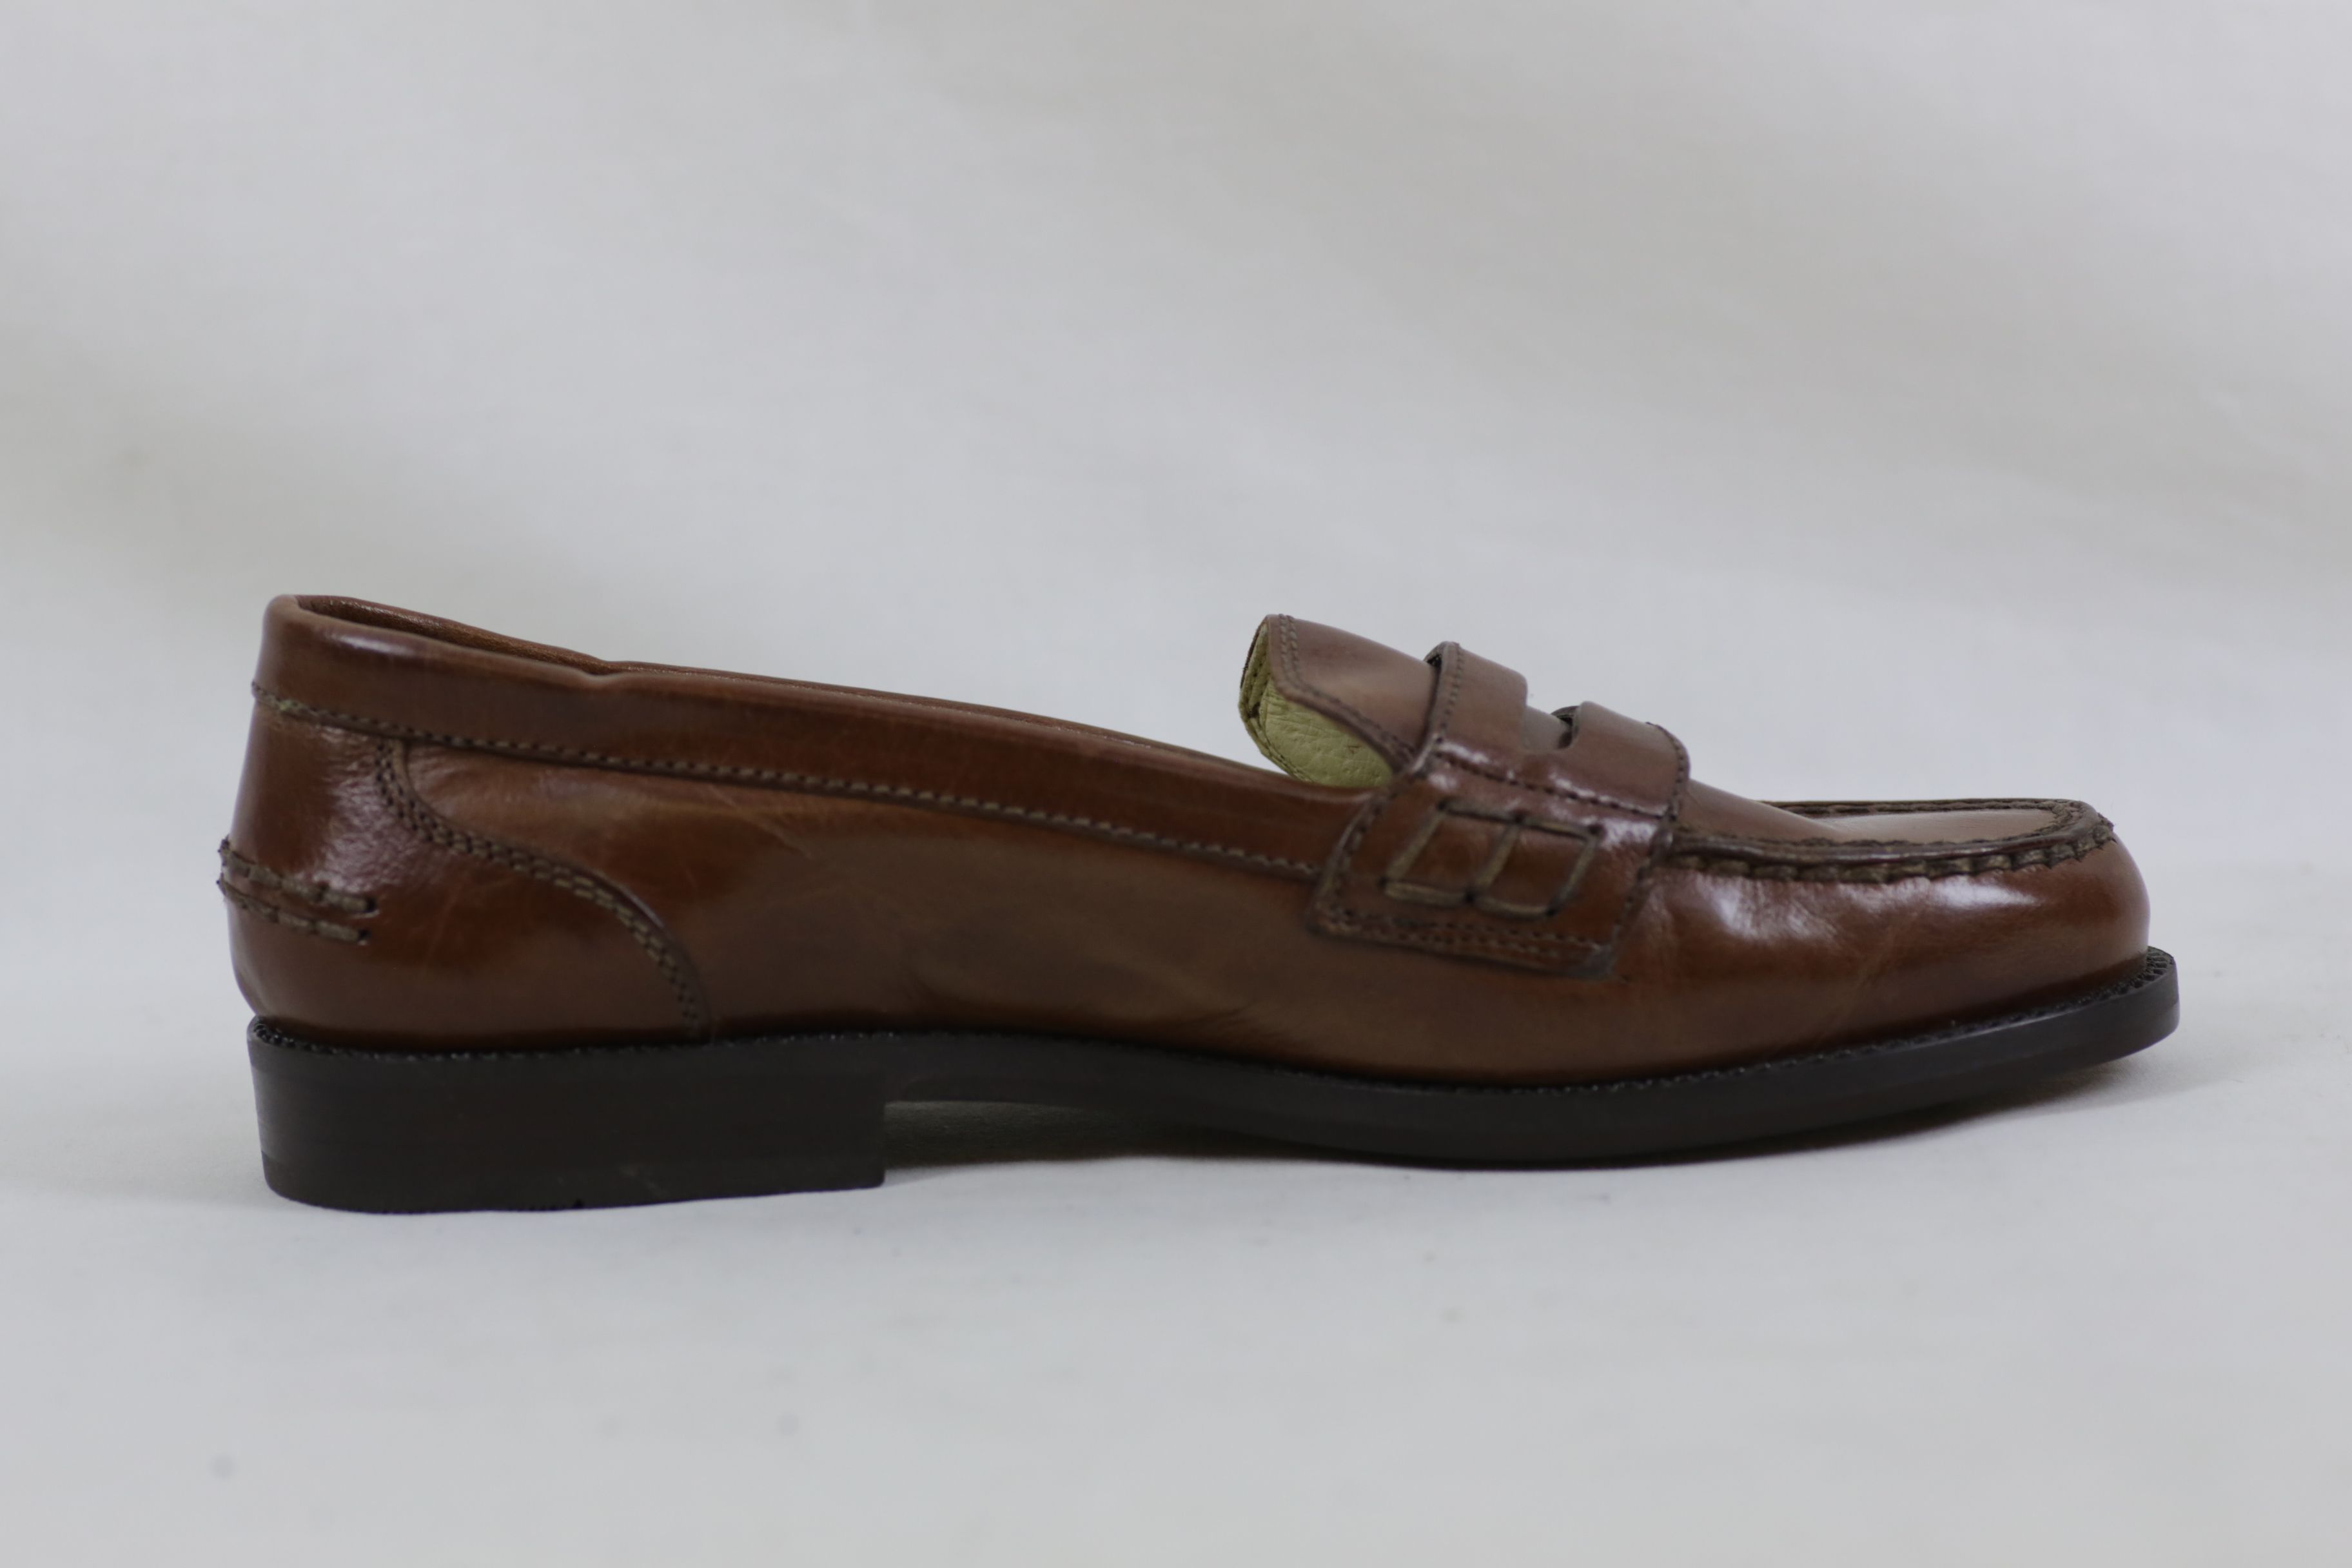 Bally Brim Classic Mid Brown Leather Shoes / Loafers - Size EU 36.5 UK 3.5 Thumbnail 5